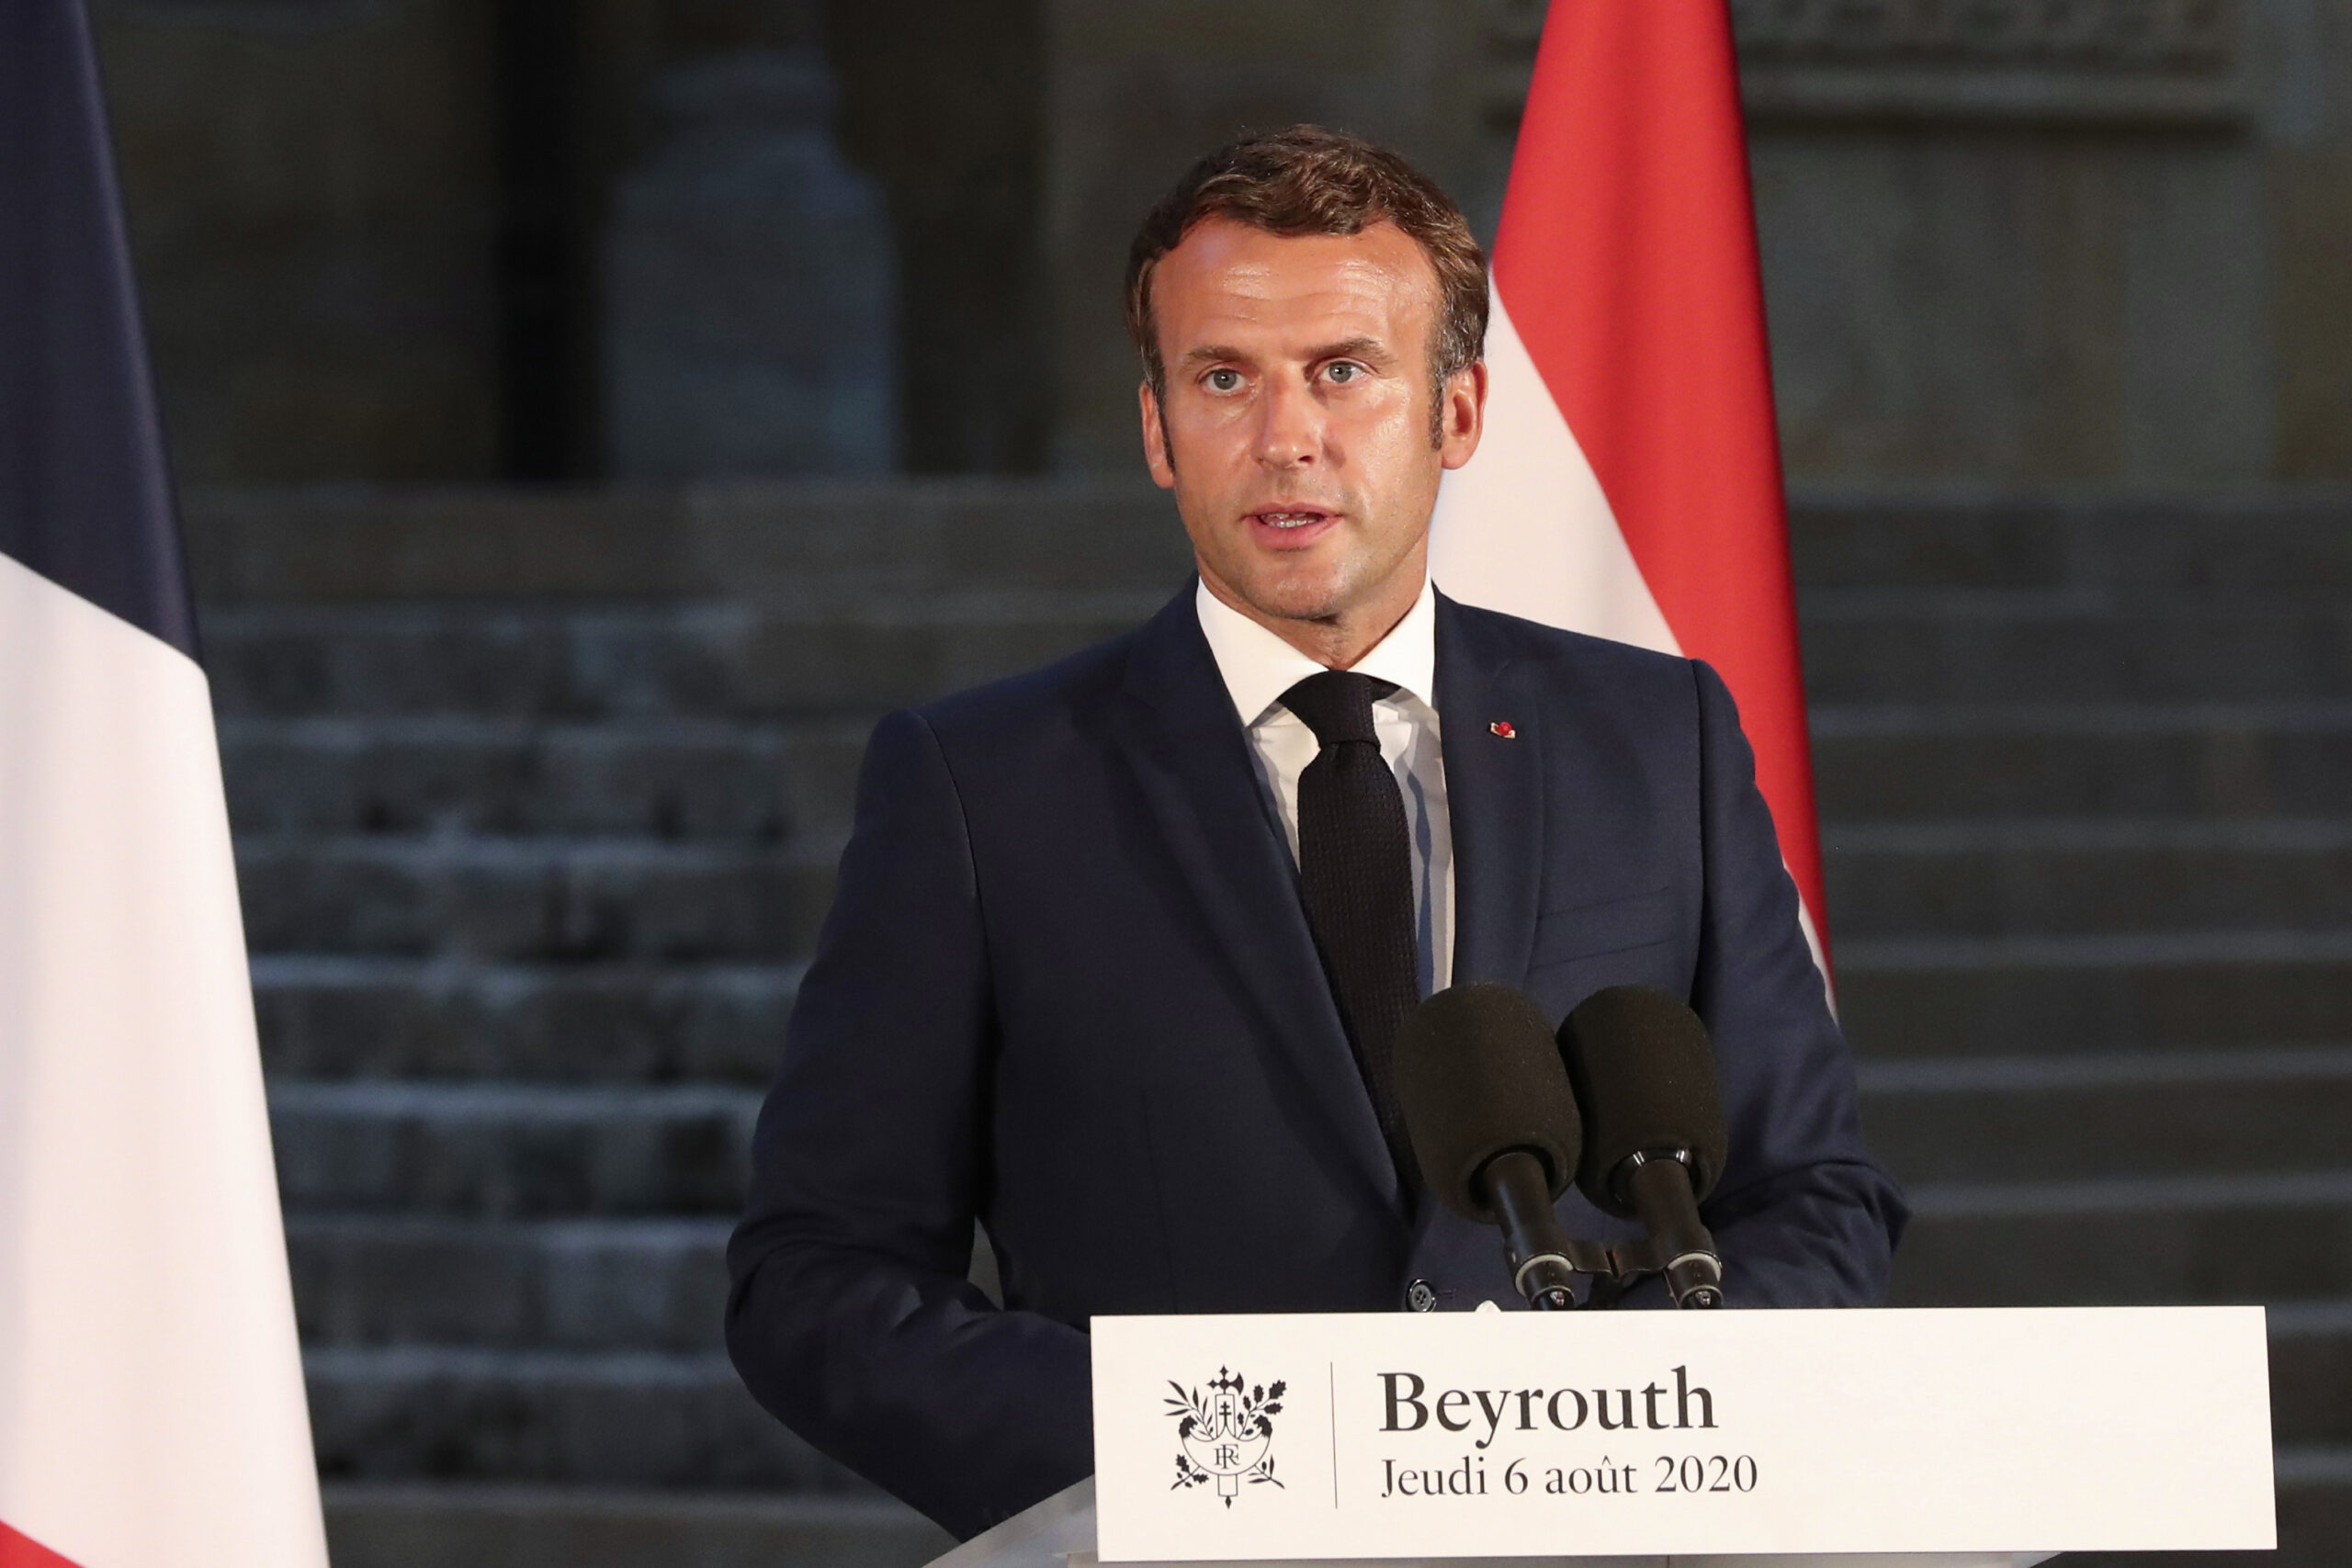 Pegasus Project: Macron among world leaders selected as potential targets of NSO spyware